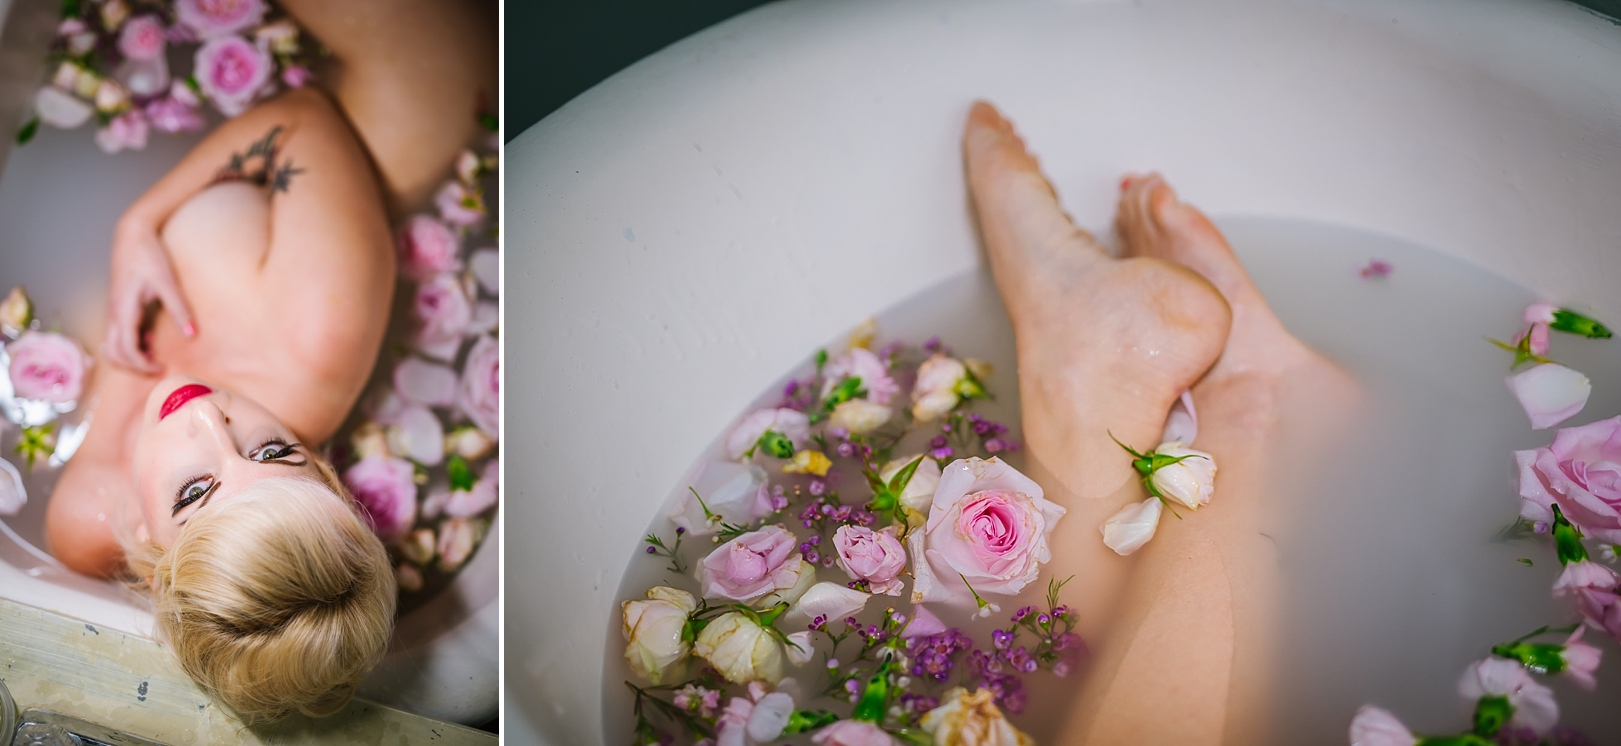 creative-hipster-boudoir-photos-tampa-studio-flowers-bathtub_0013.jpg